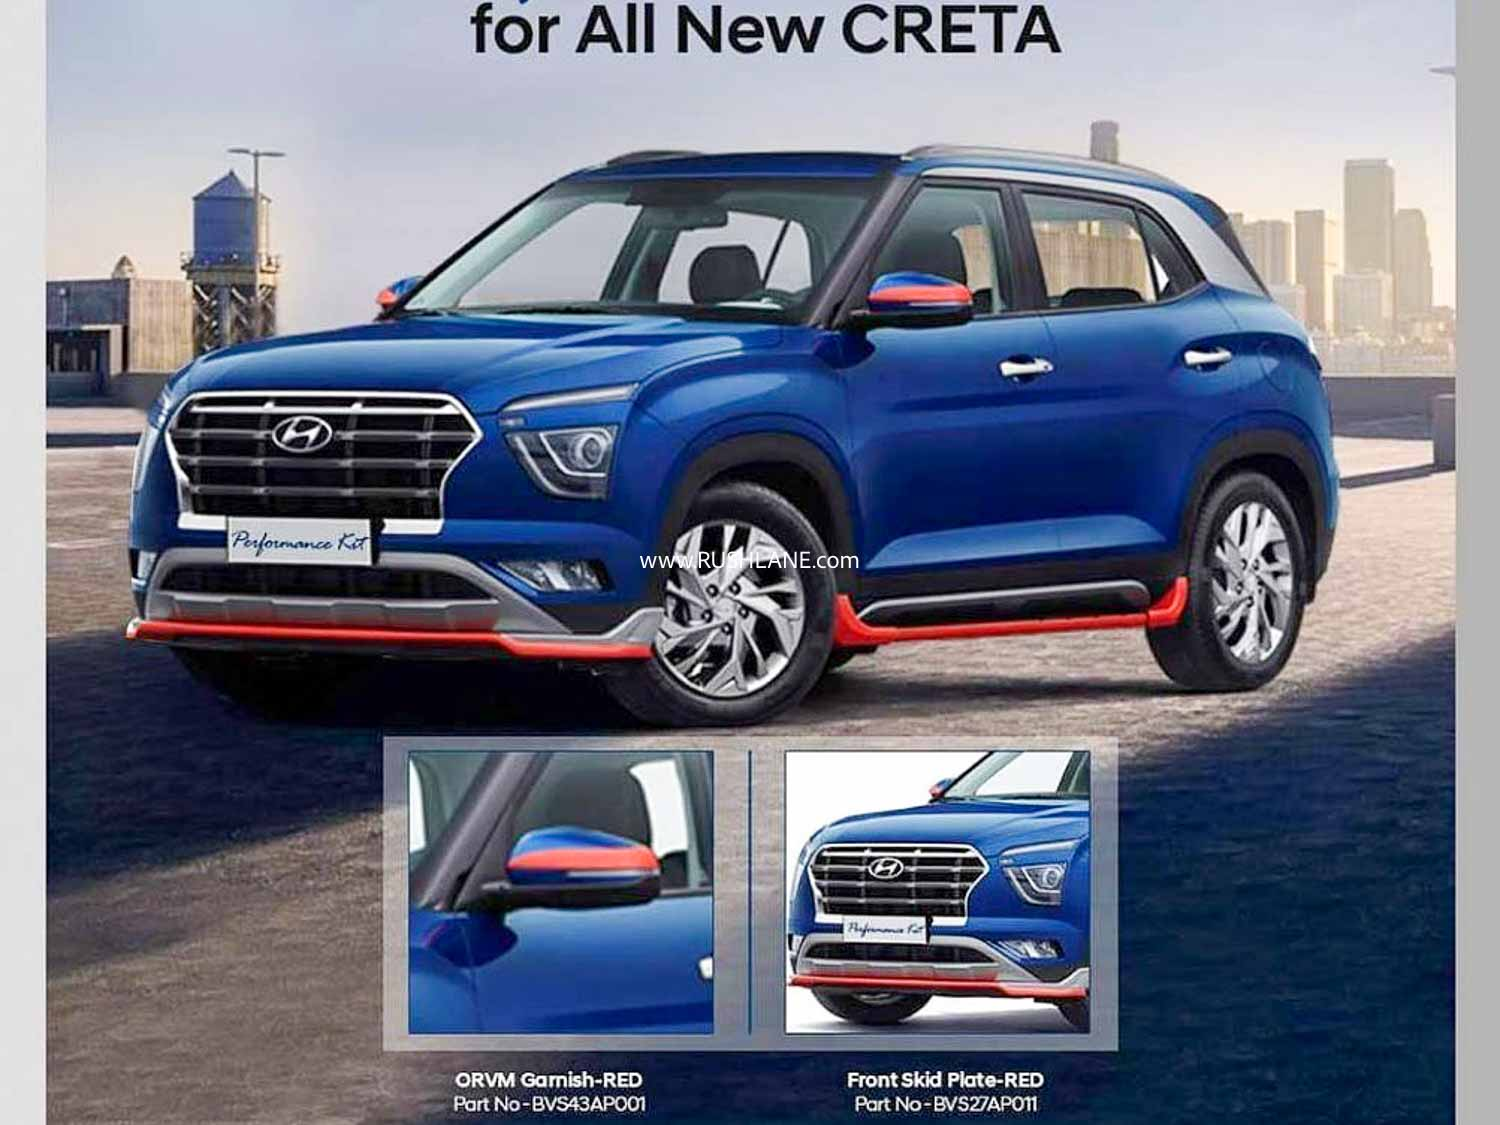 2020 hyundai creta performance and adventure kits launched